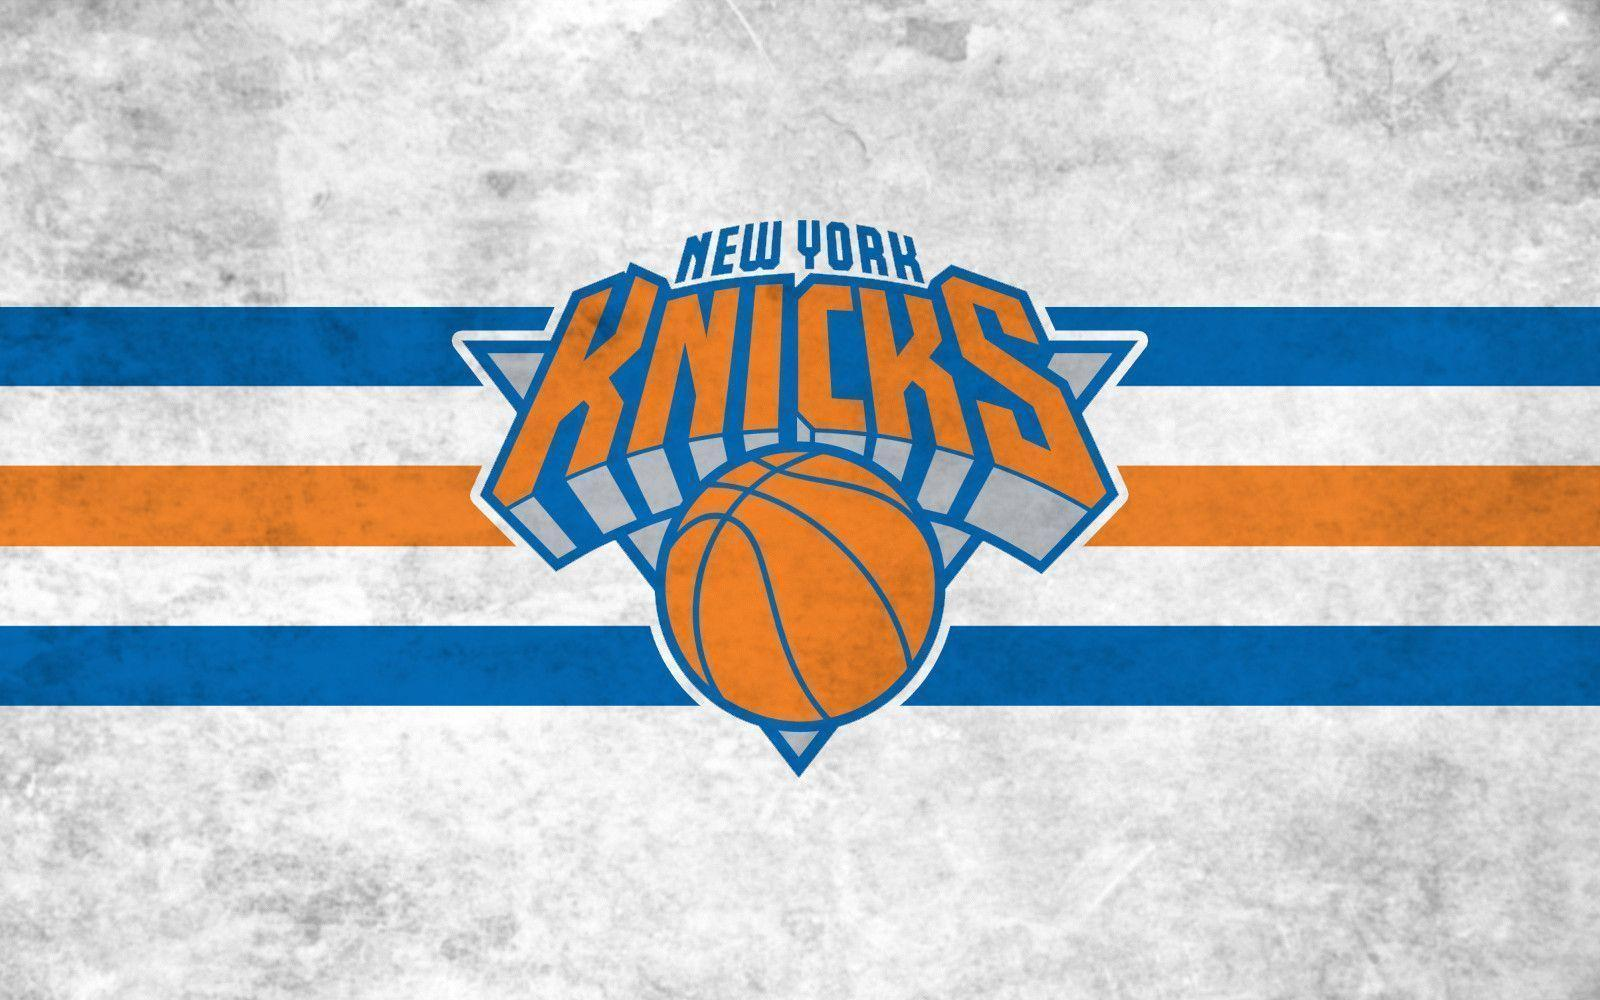 New York Knicks HD Wallpapers